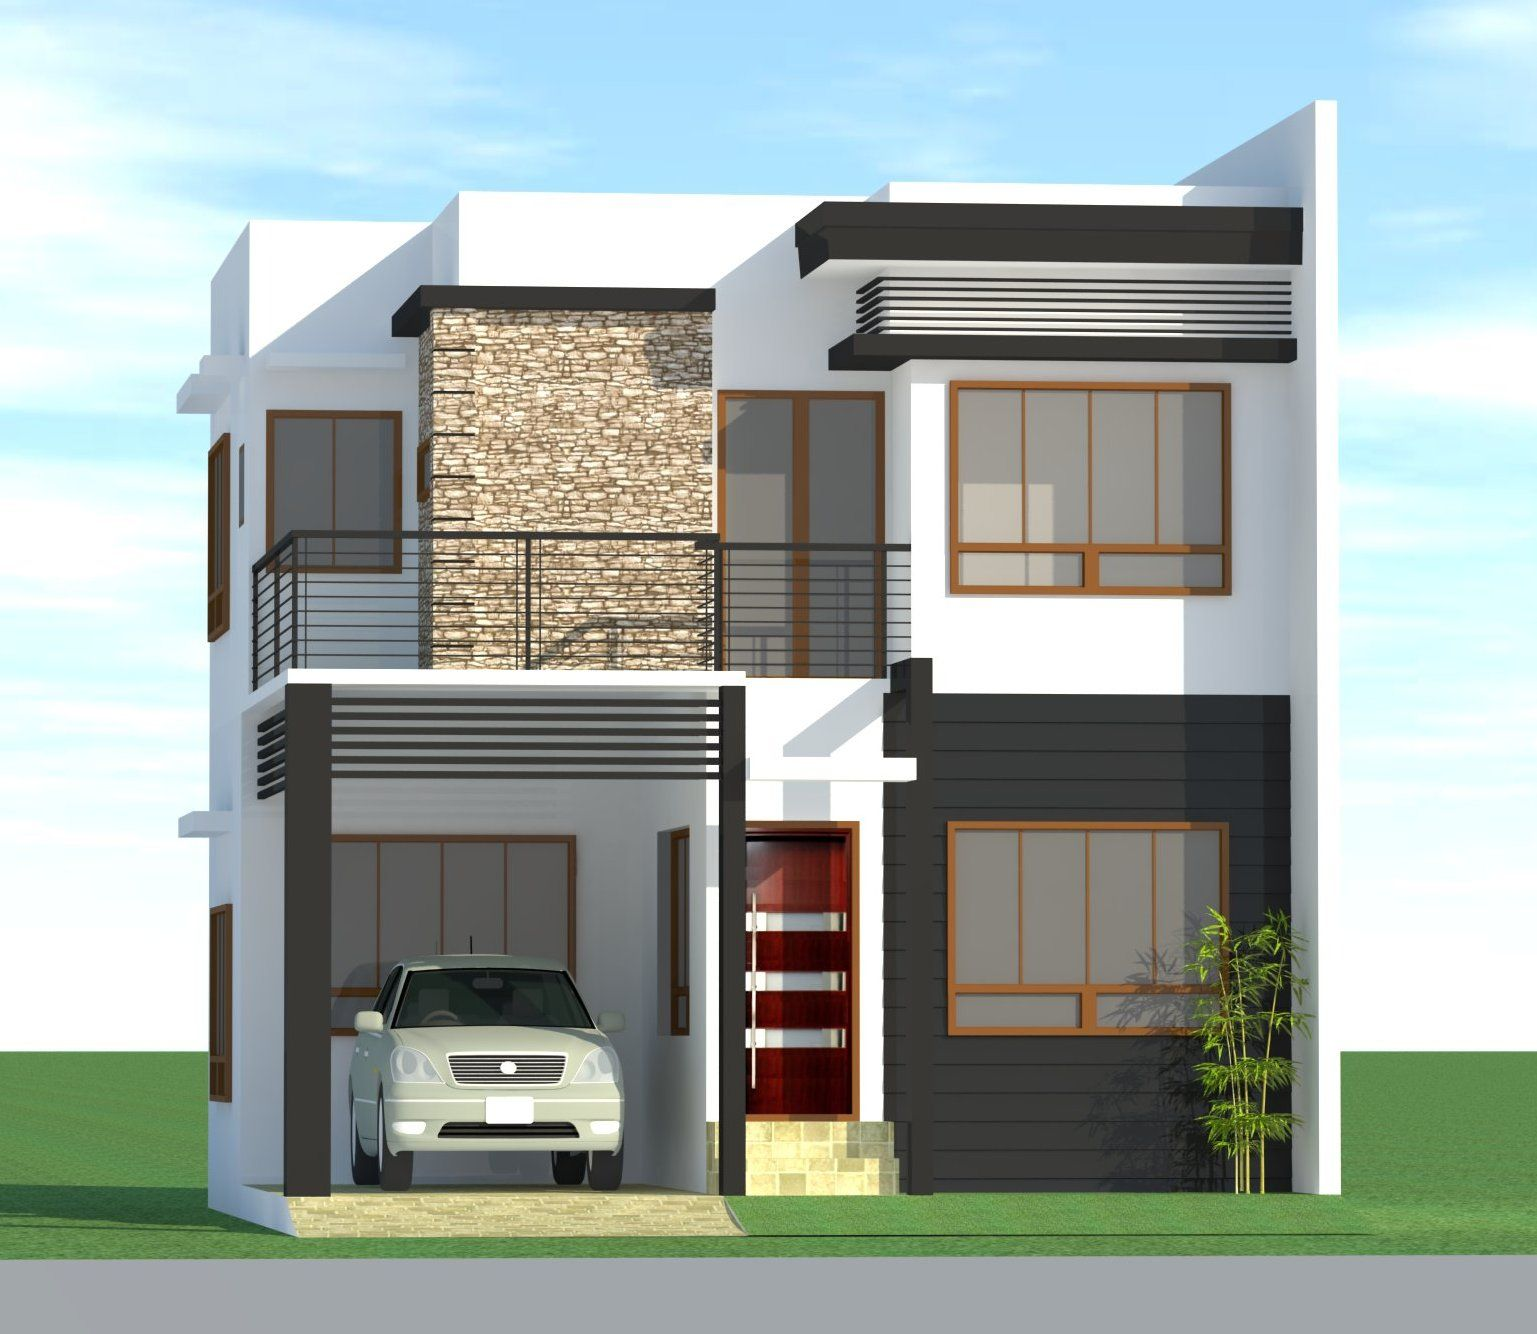 Exterior Small Home Design Ideas: Philippines House Design Images 3 Home Design Ideas